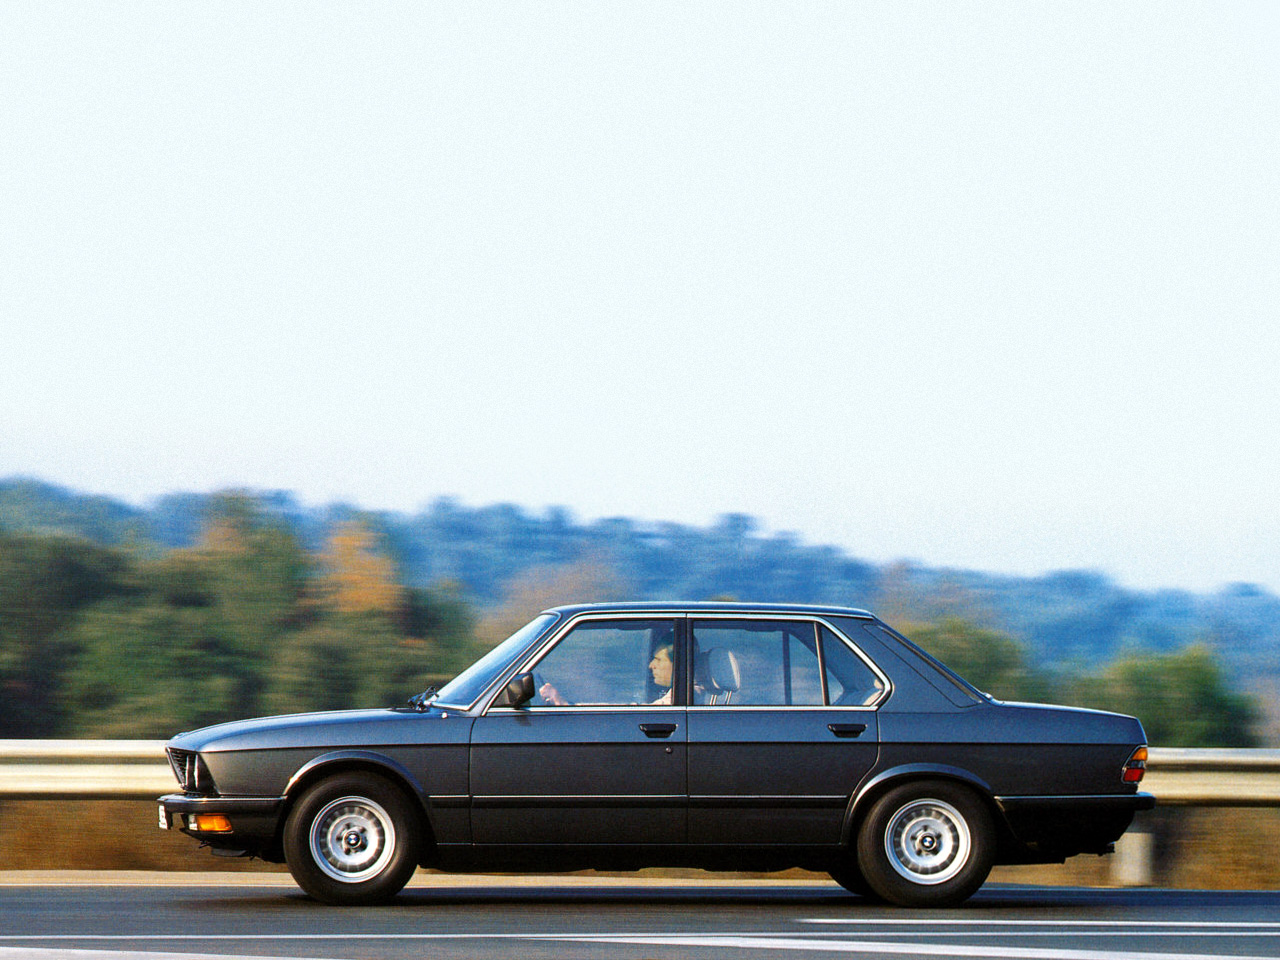 BMW 5 series 525 1981 photo - 11